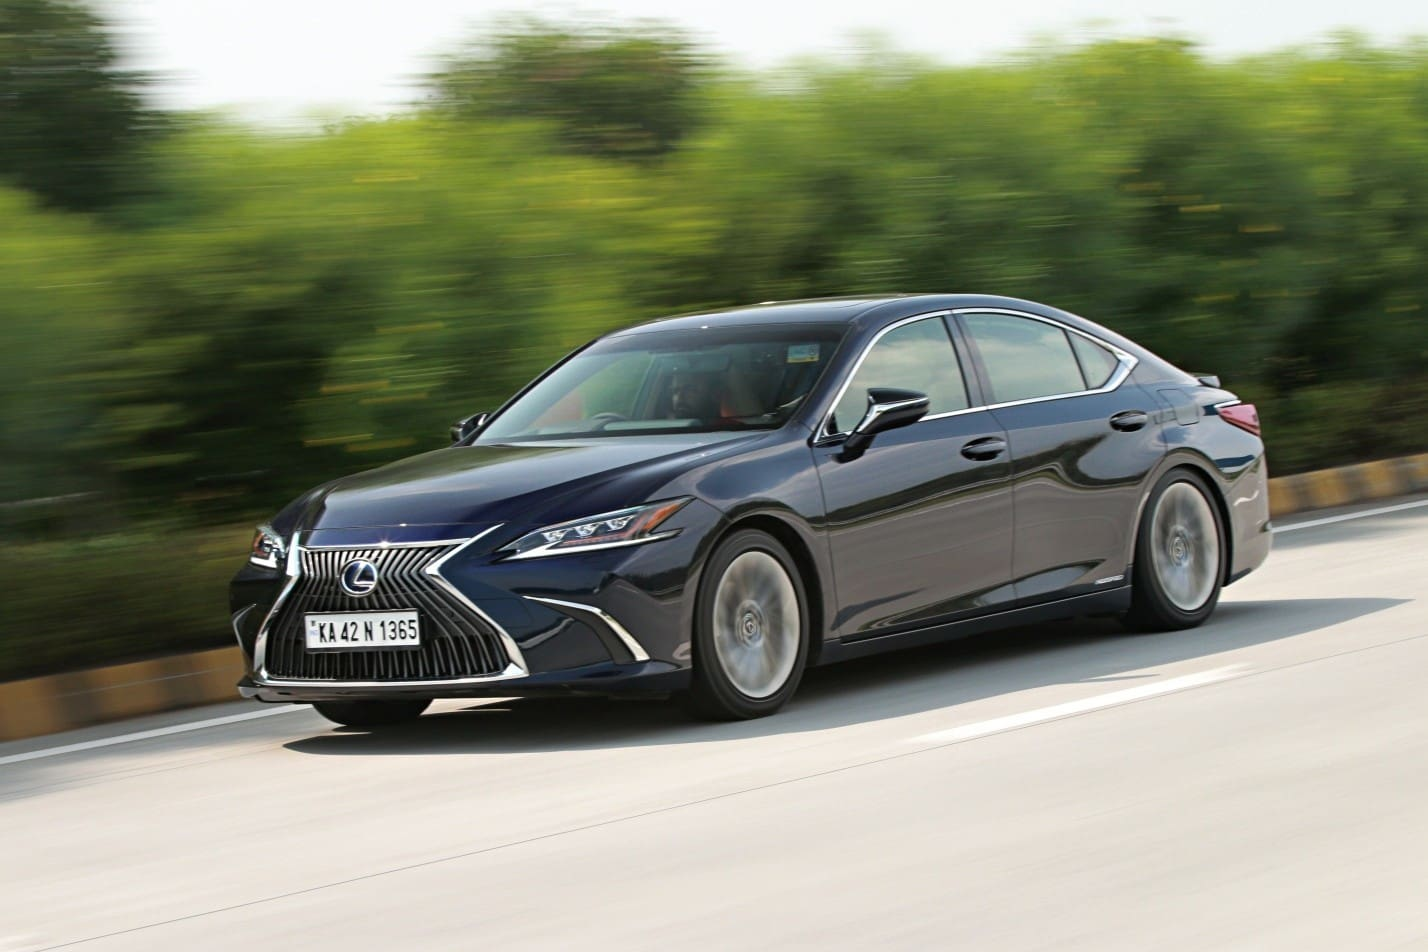 2018 Lexus ES 300h: First Drive Review